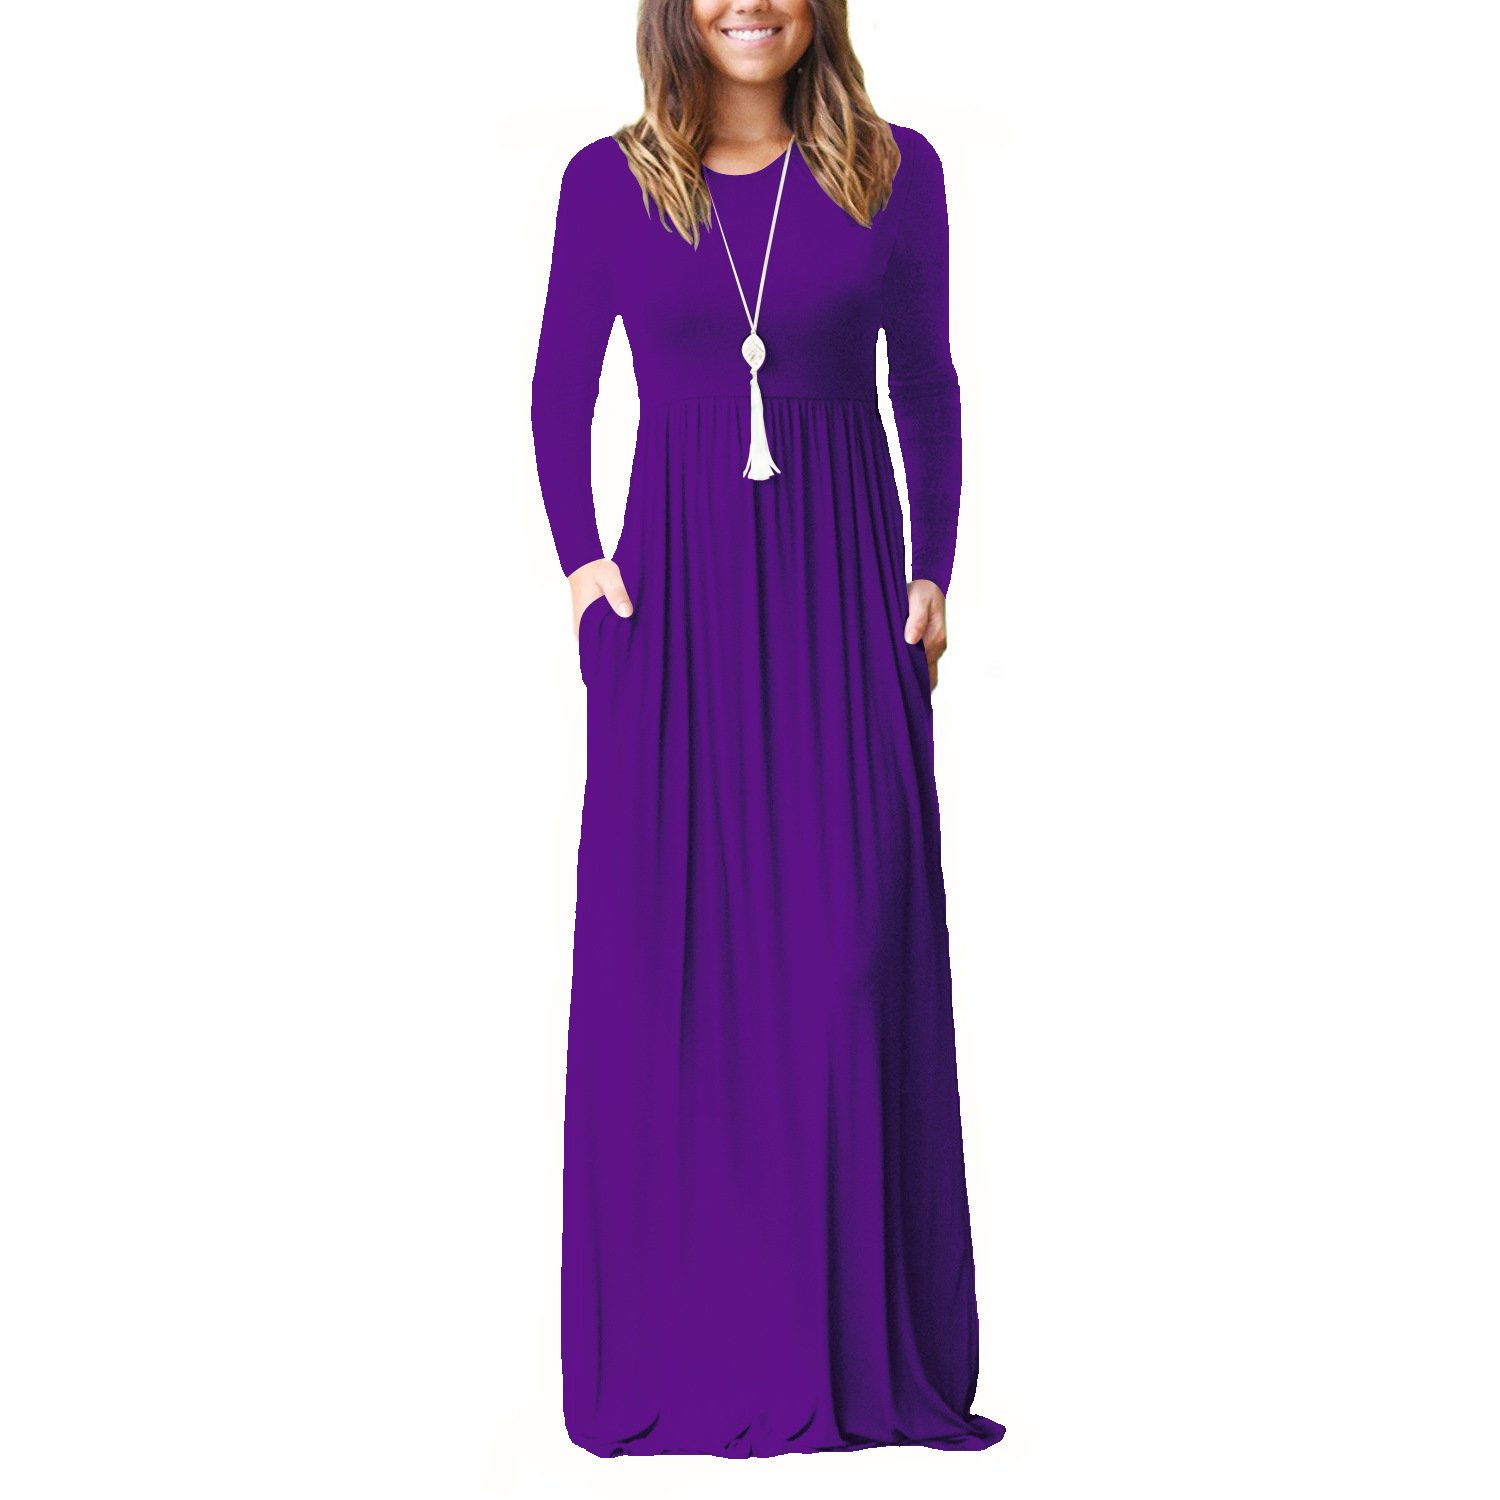 Amzbeauty Long Sleeve Maxi Dresses for Women Round Neck Casual Dress with Pockets at Amazon Womens Clothing store: